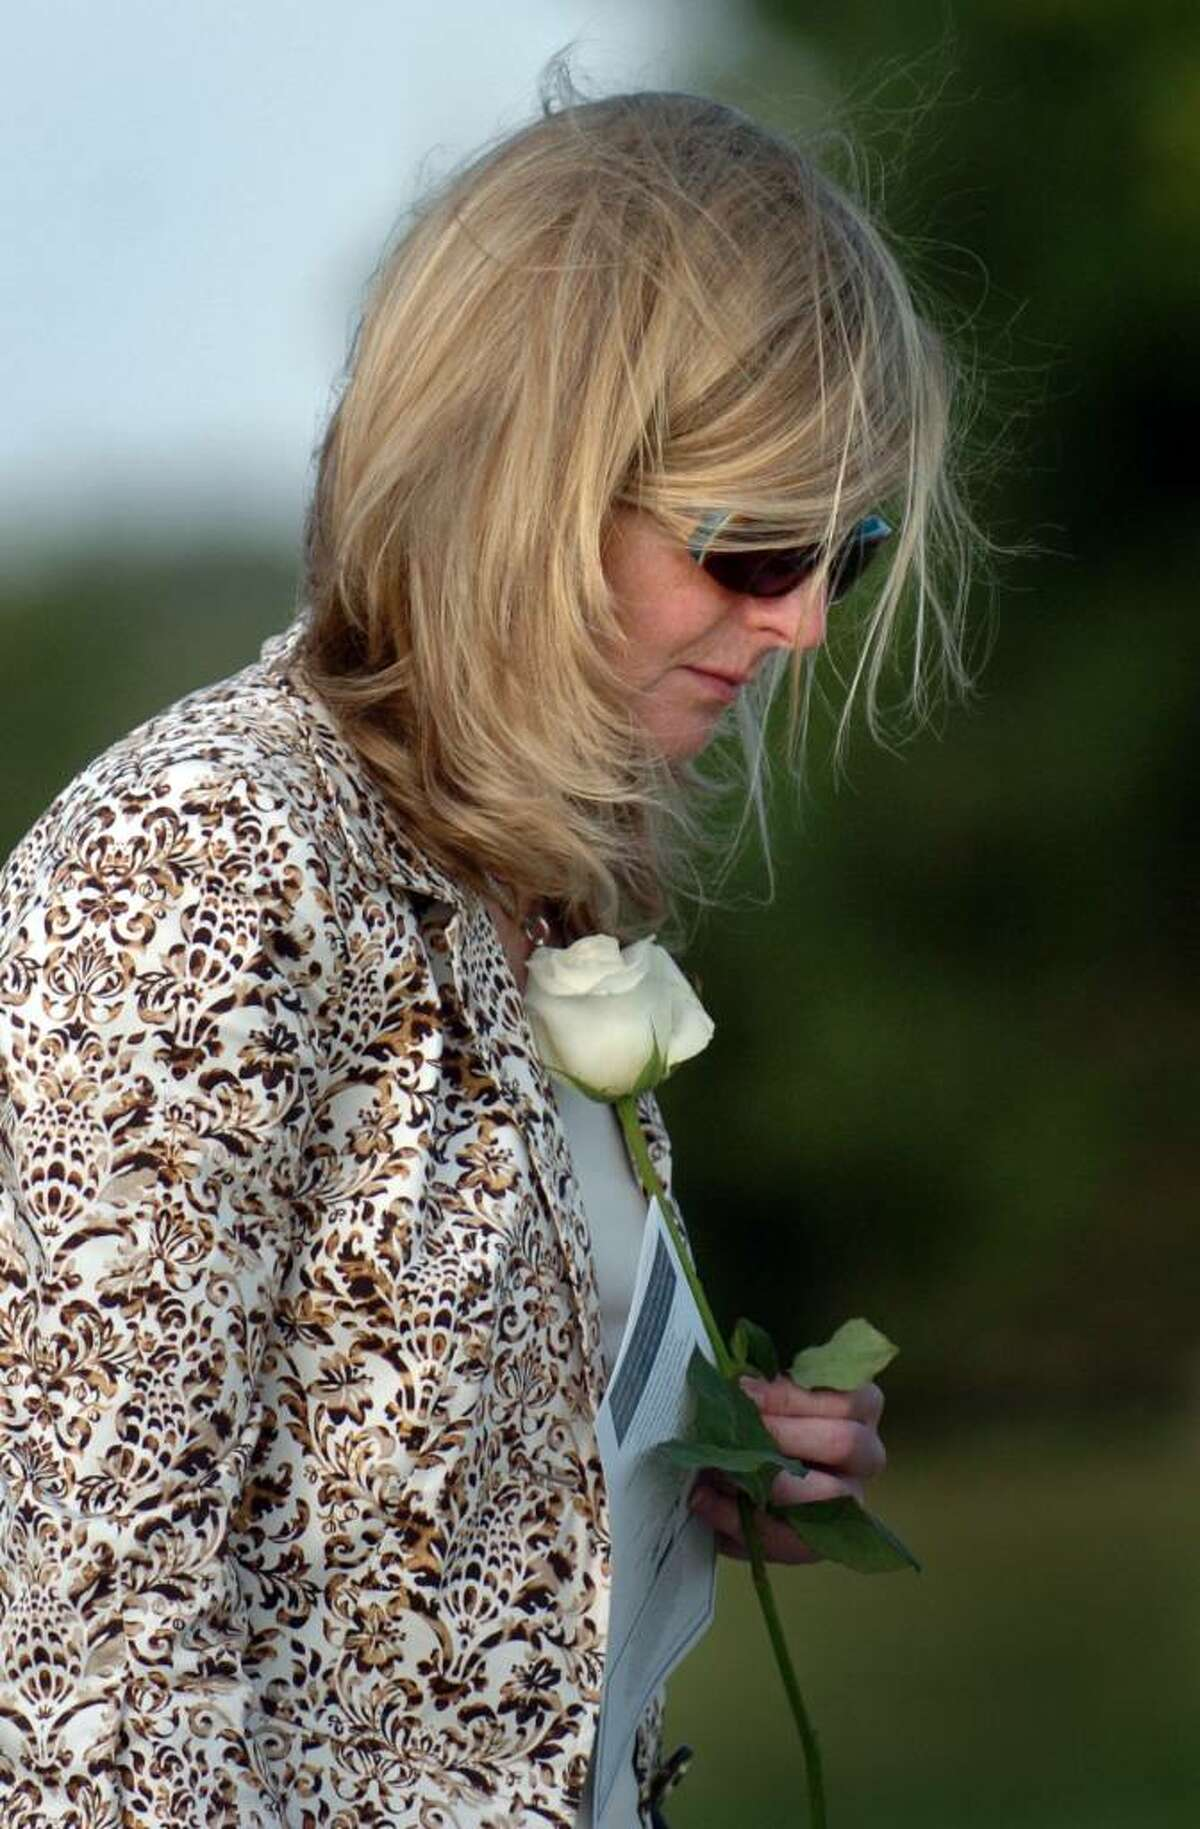 Susan Gardner, of Darien, takes a moment before placing a rose on her late husband Christopher Garner's name on the state's 9/11 Living Memorial during the annual ceremony Wednesday Sept. 9, 2009 at Sherwood Island State Park in Westport, Conn.